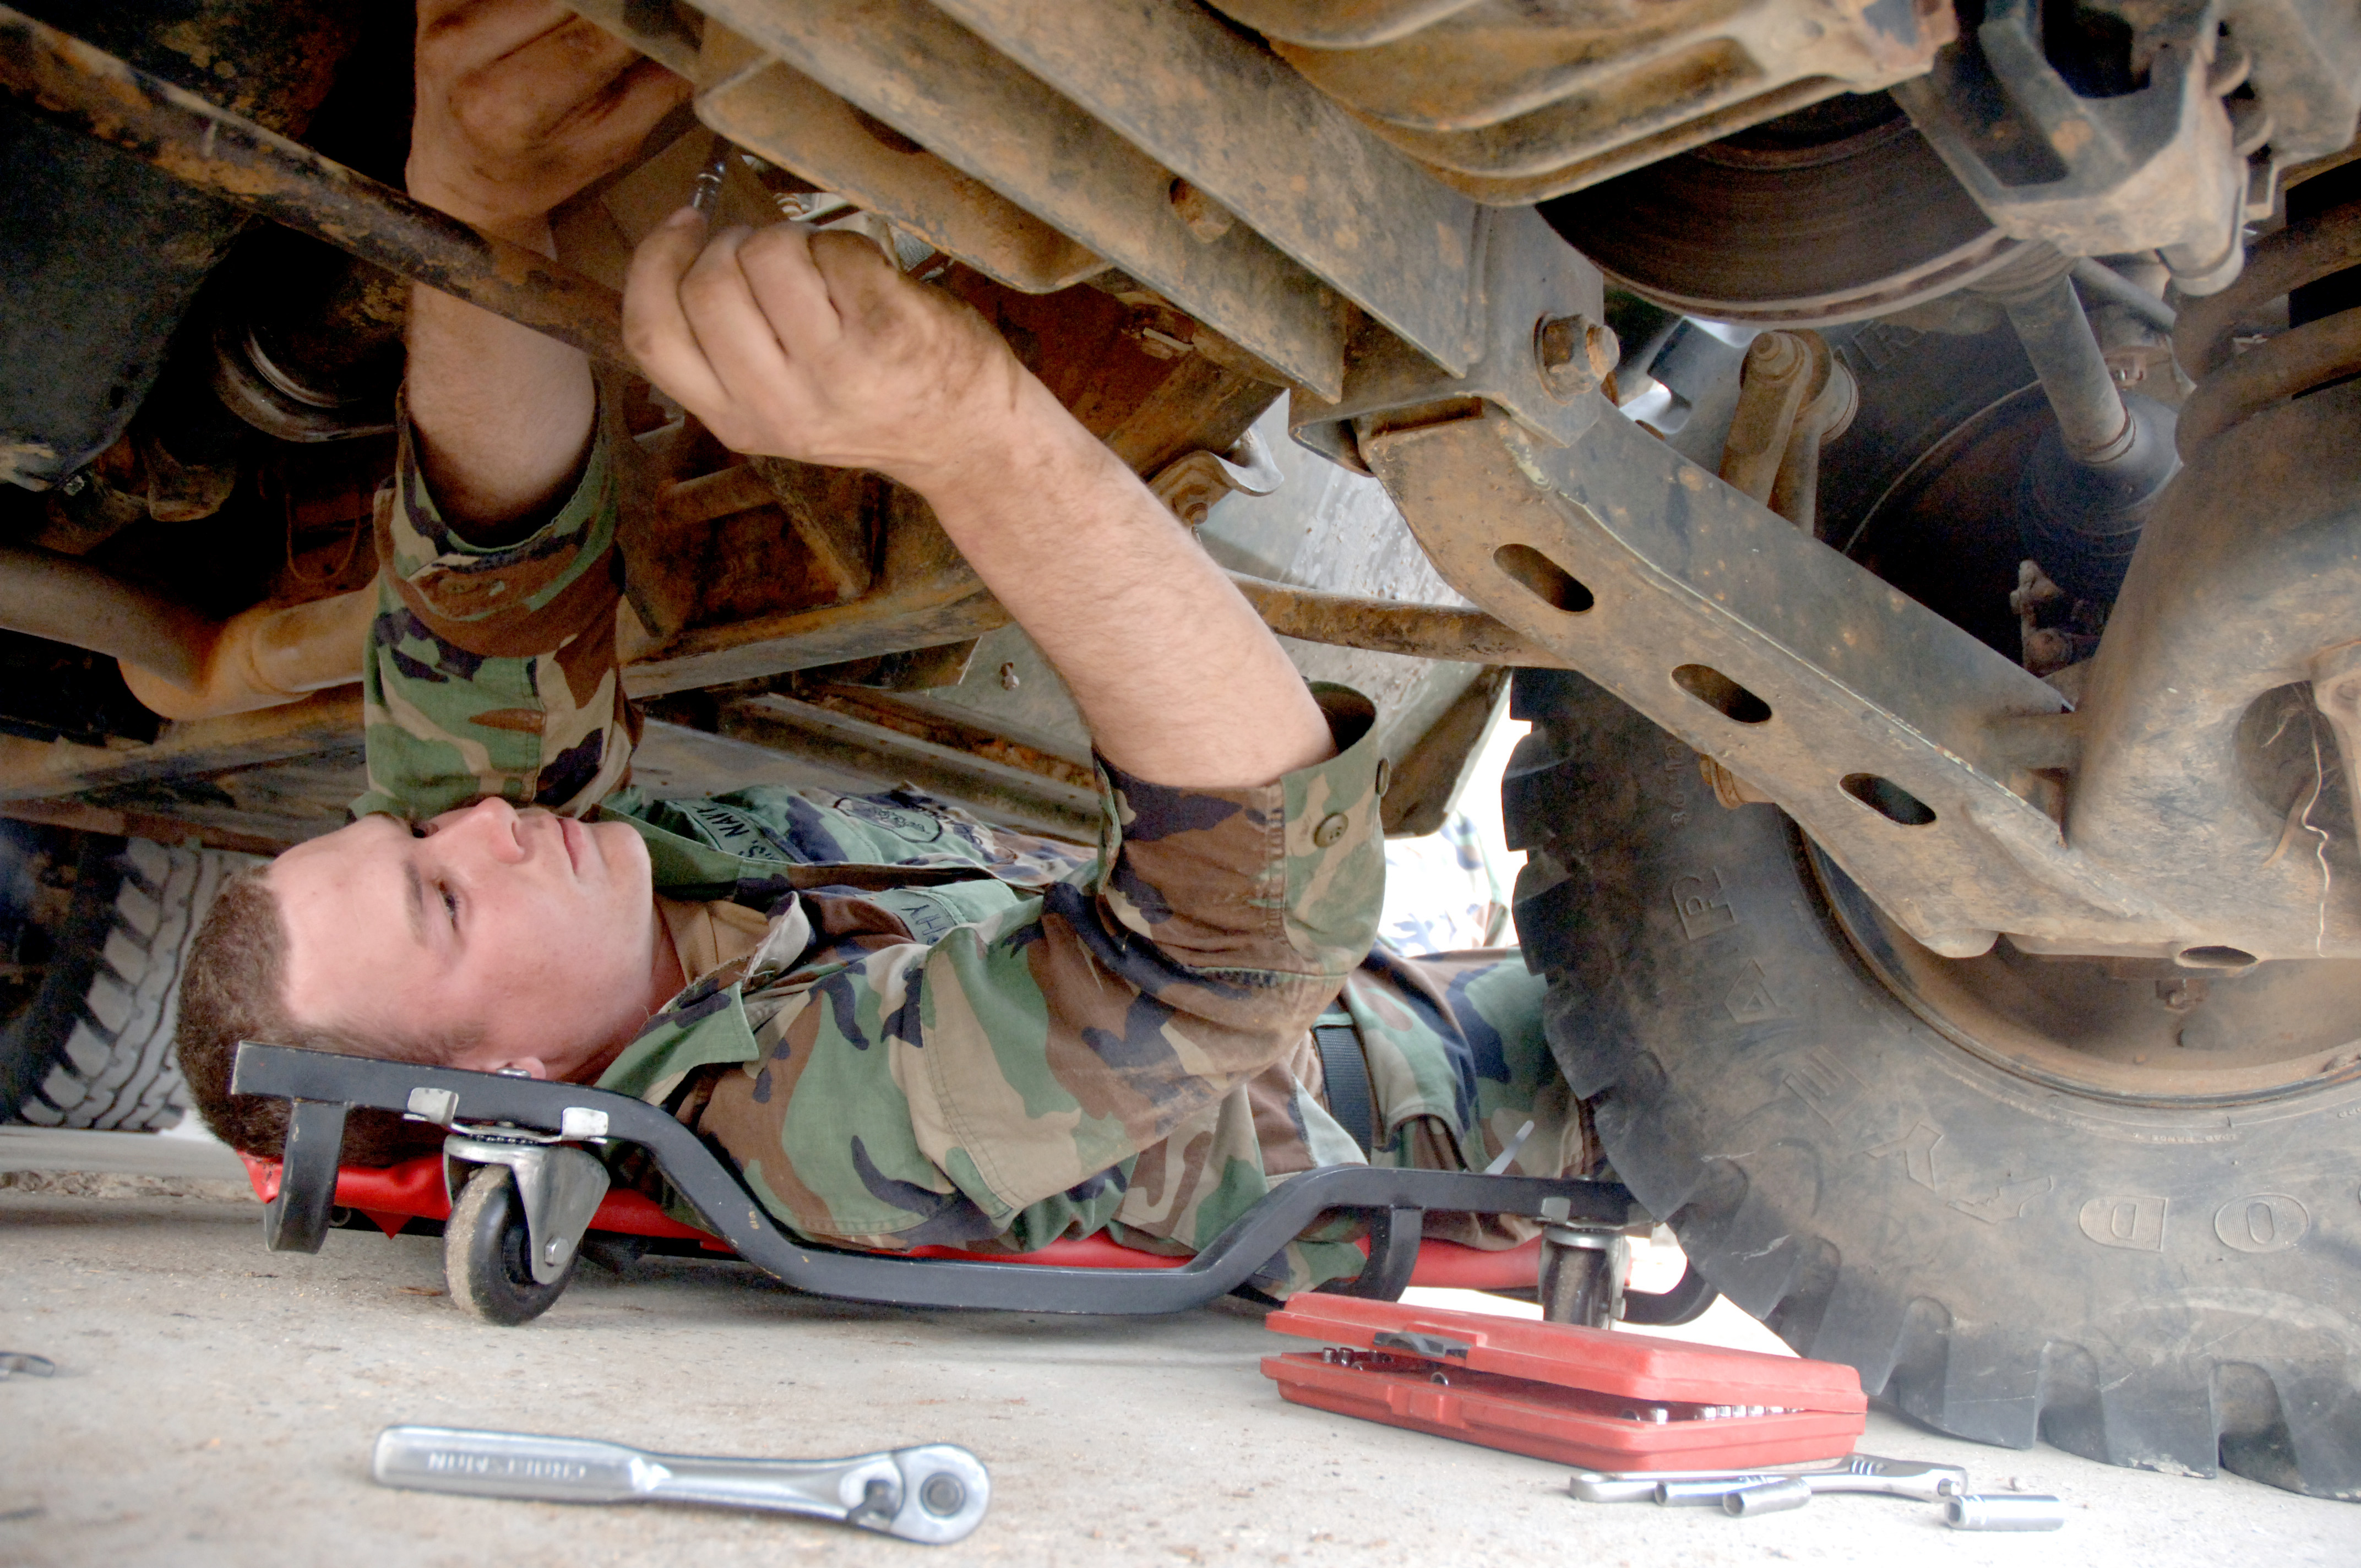 File:US Navy 060309-N-0553R-001 Construction Mechanic Sean Murphy ...